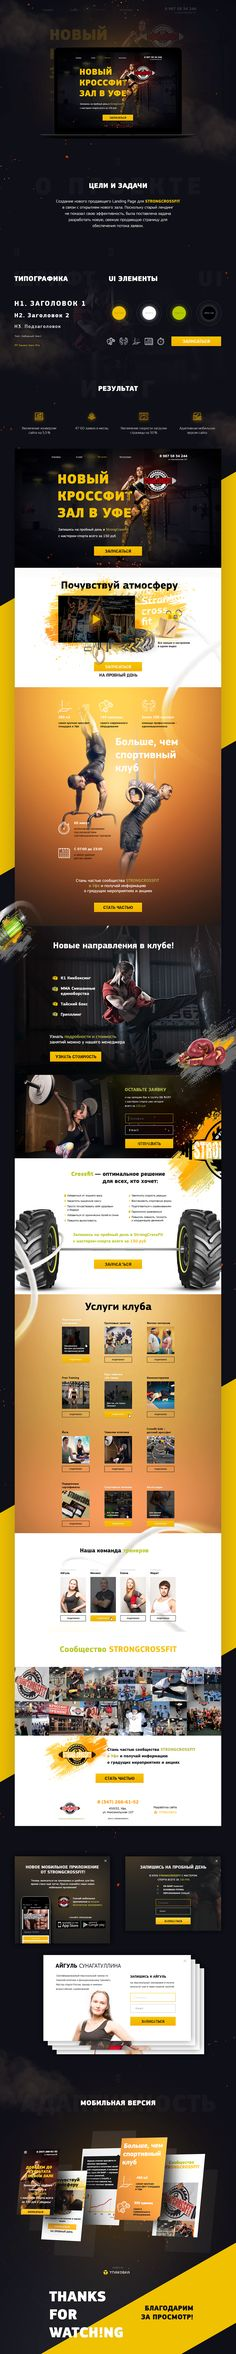 Ознакомьтесь с моим проектом @Behance: «CROSSFIT Landing Page» https://www.behance.net/gallery/57293017/CROSSFIT-Landing-Page